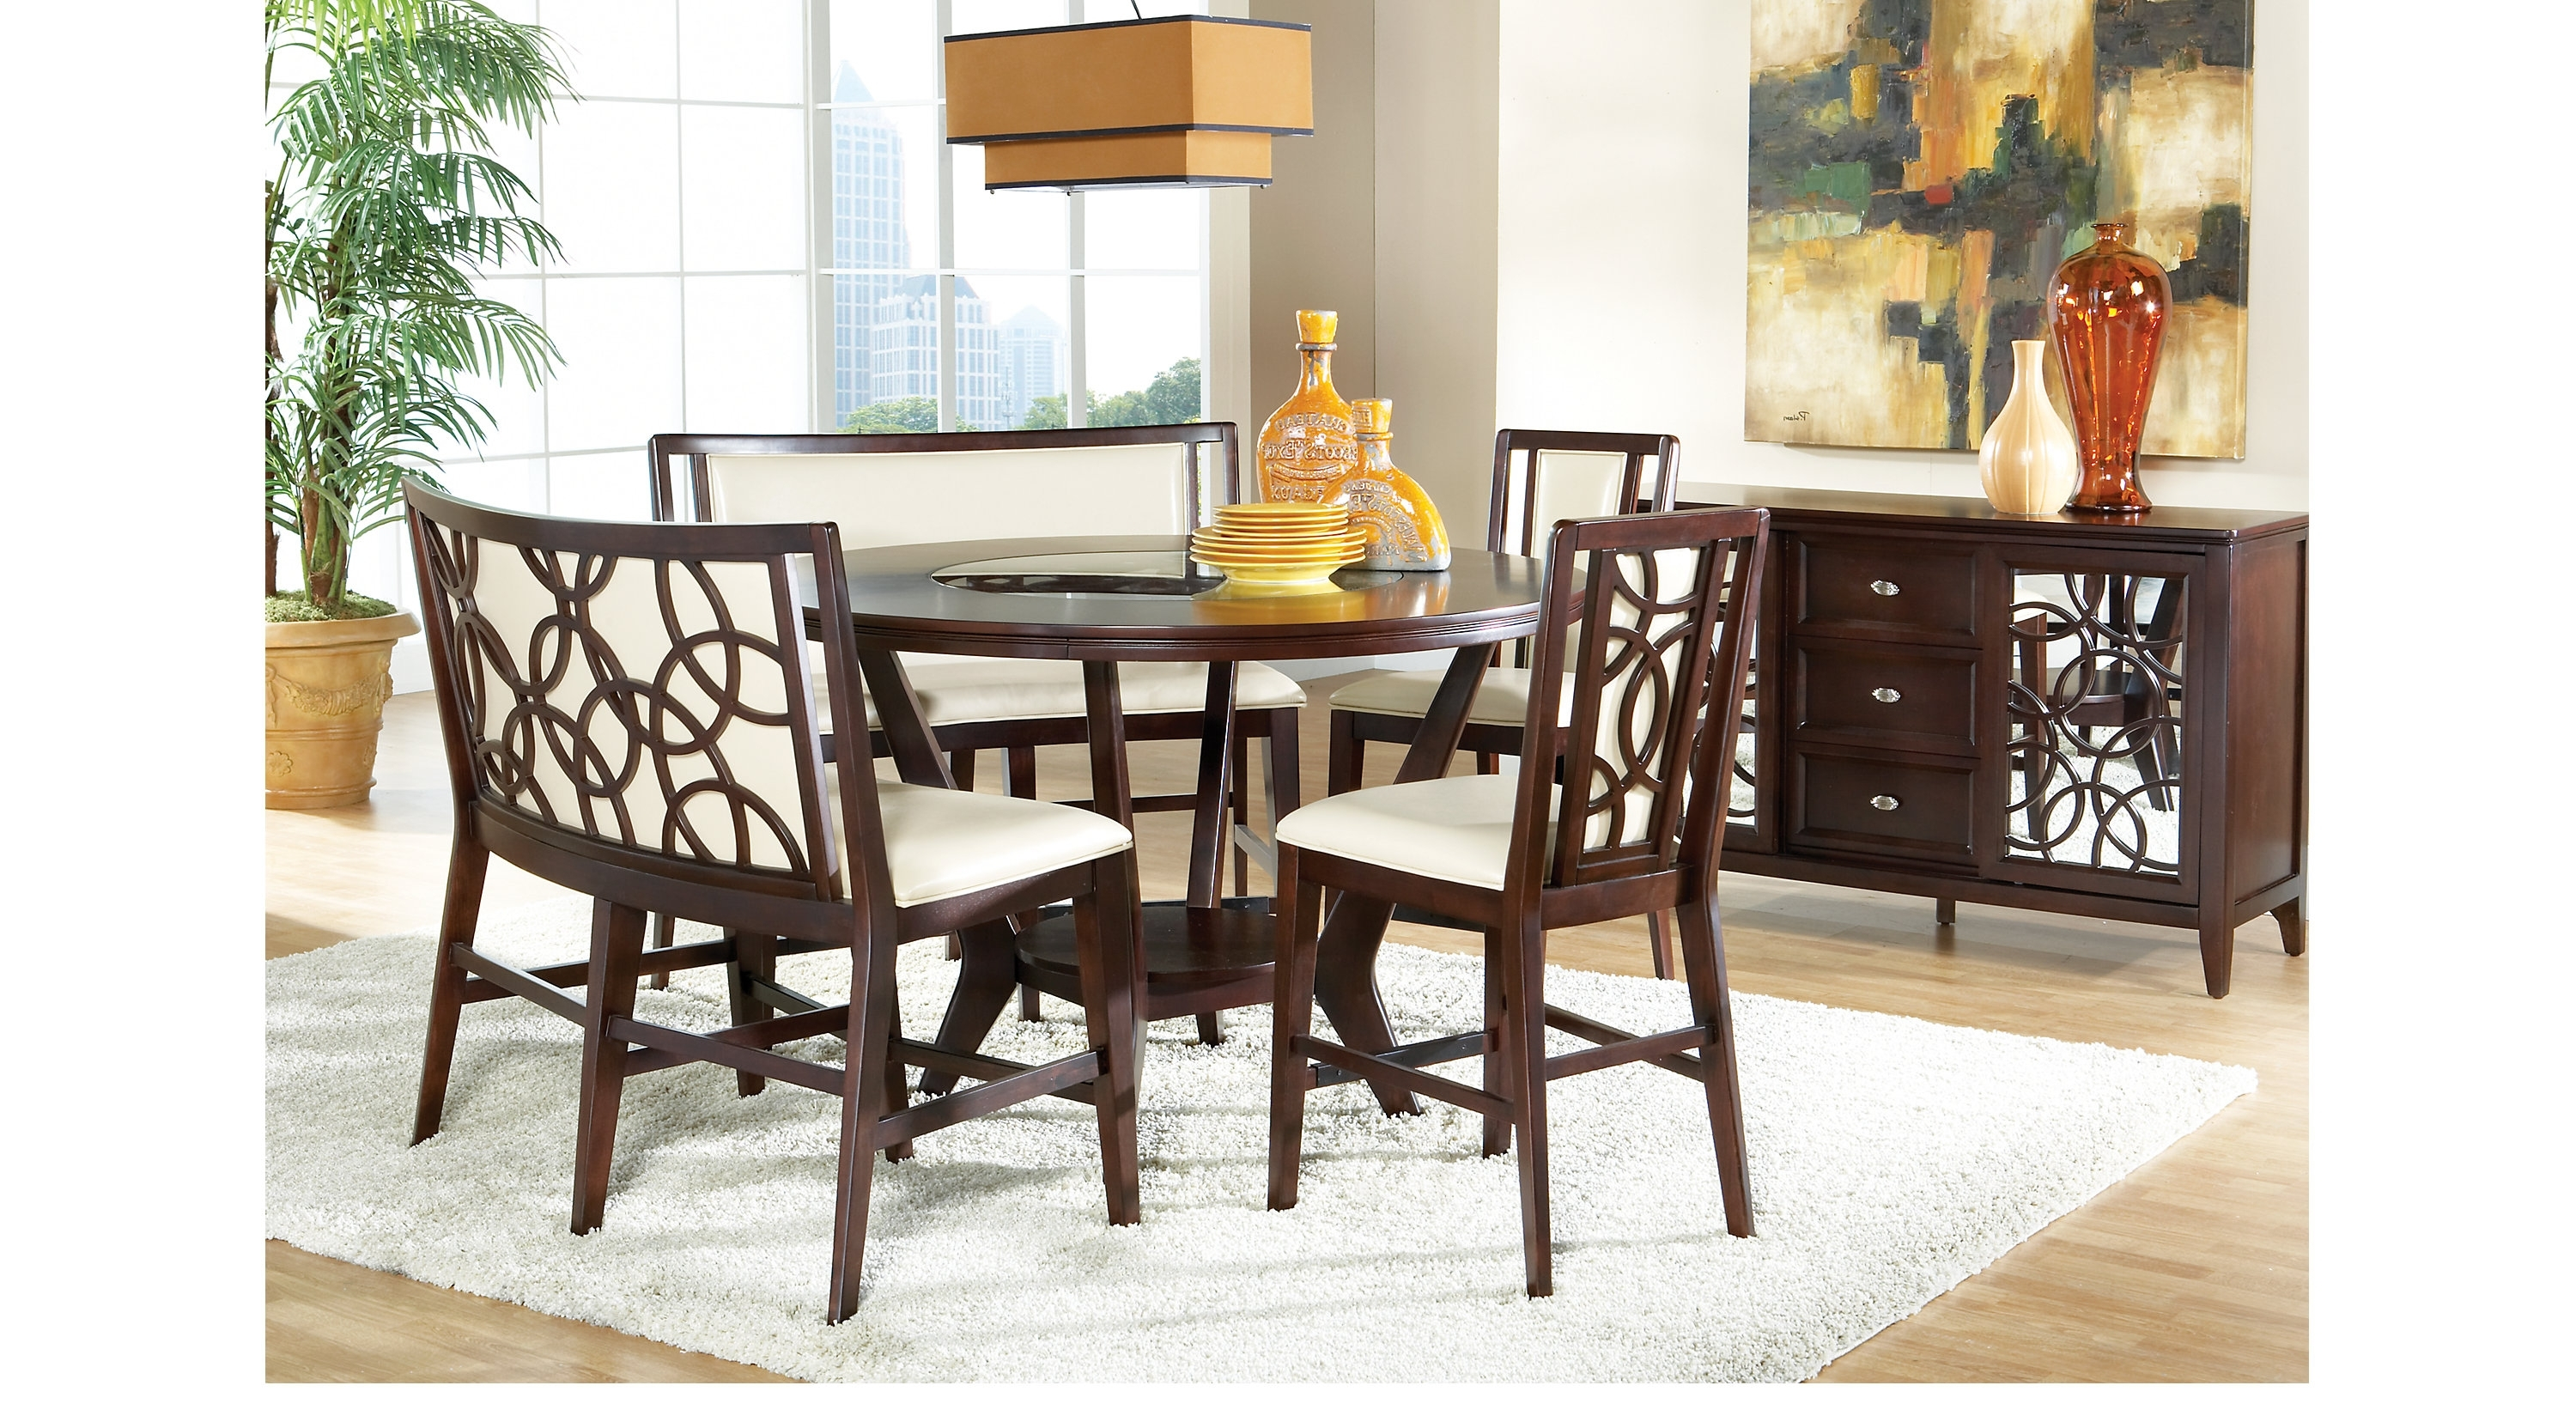 Crawford 6 Piece Rectangle Dining Sets In Preferred Dining: Cindy Crawford 5 Pc Espresso Dining Room Set With Round (View 7 of 25)